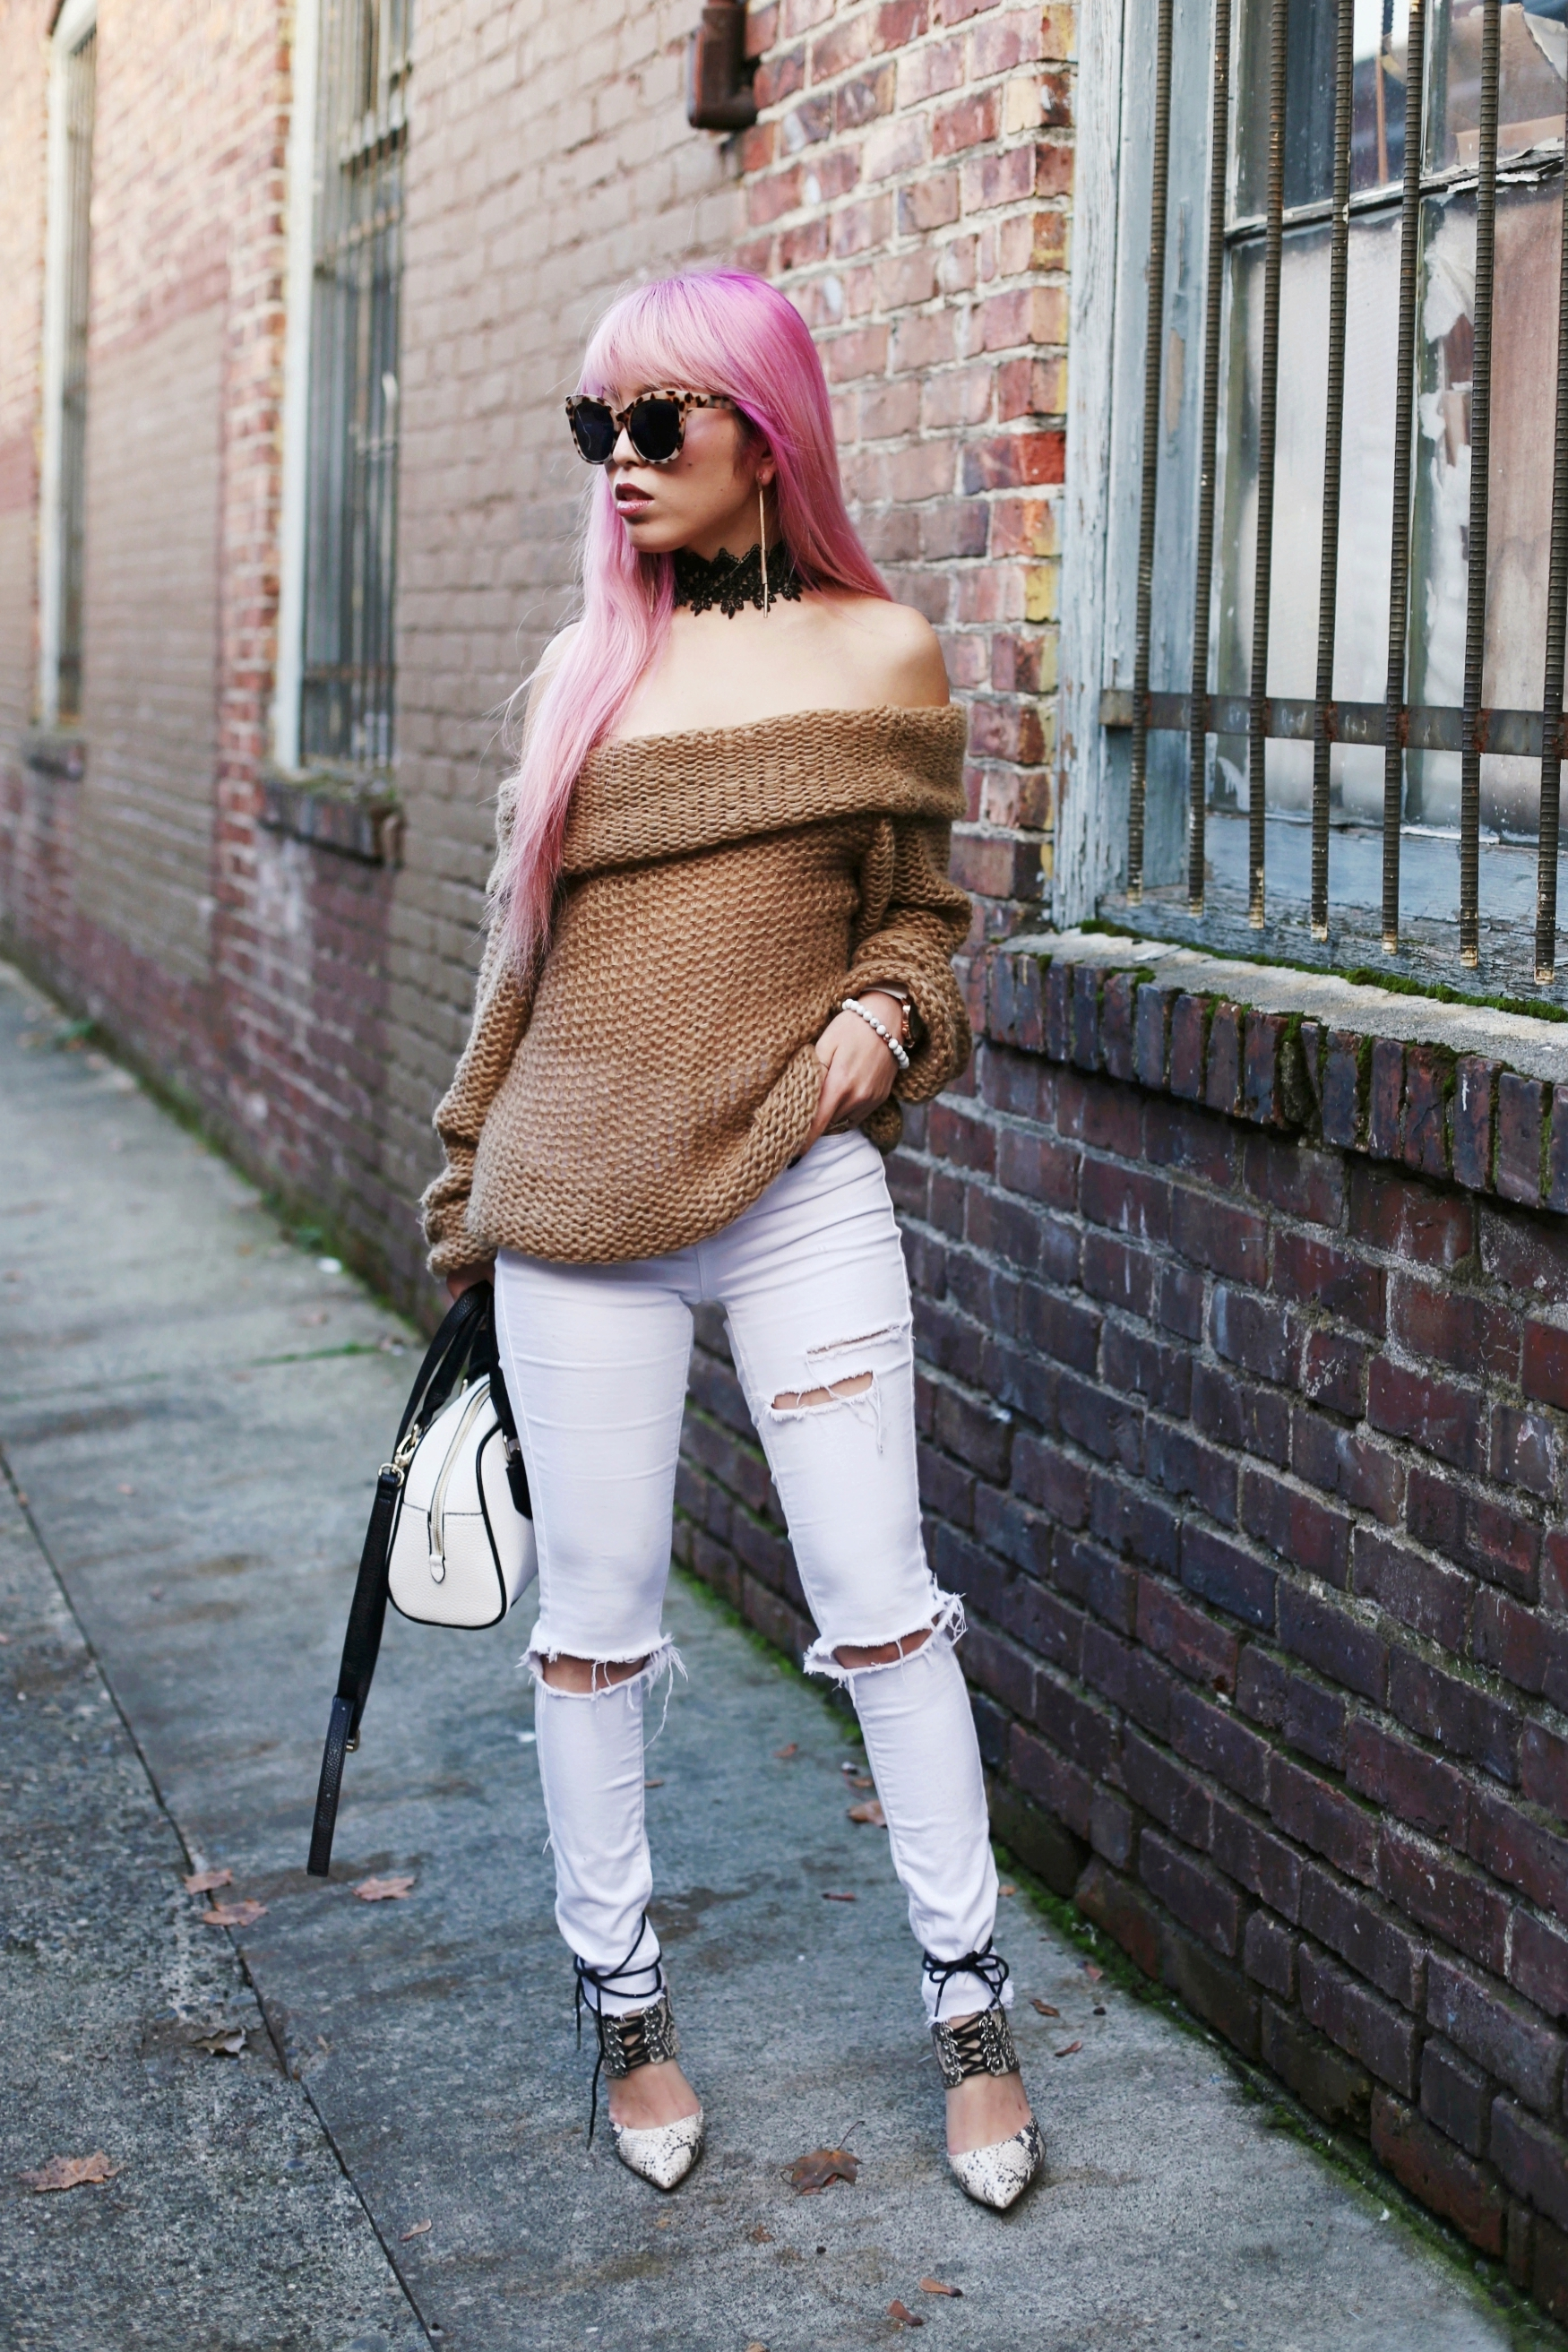 Urban Outfitters Sunglasses_Camel Off The Shoulder Sweater_TOPSHOP white jeans_ZARA Bag_ASOS Snake Skin Heels_Shop Dixi Lace Choker_Aika's Love Closet_Seattle Fashion Blogger_Japanese_Pink Hair_Colored Hair